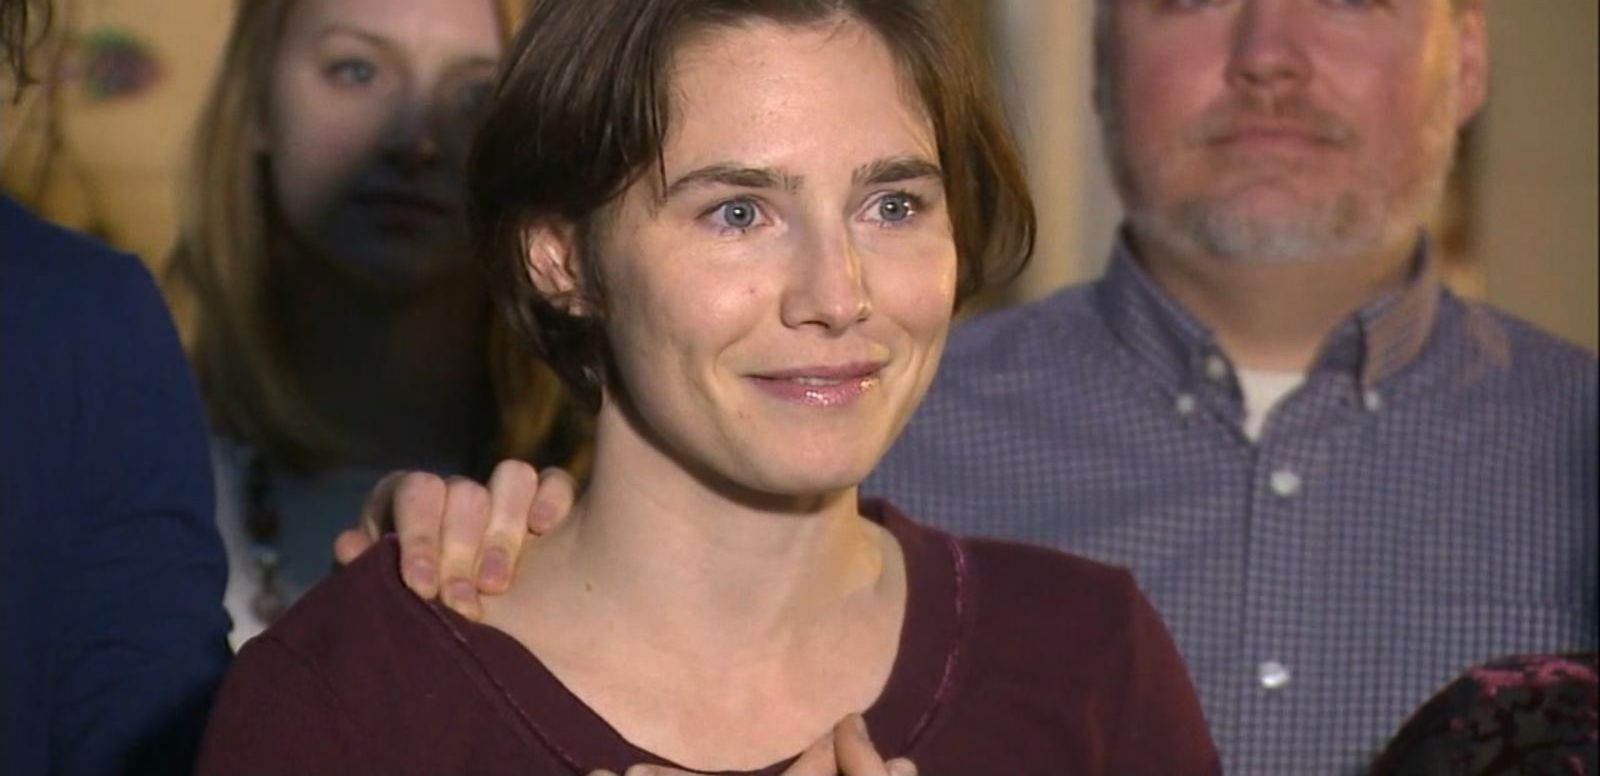 VIDEO: Amanda Knox Weighs Next Move After Italian Court Decision